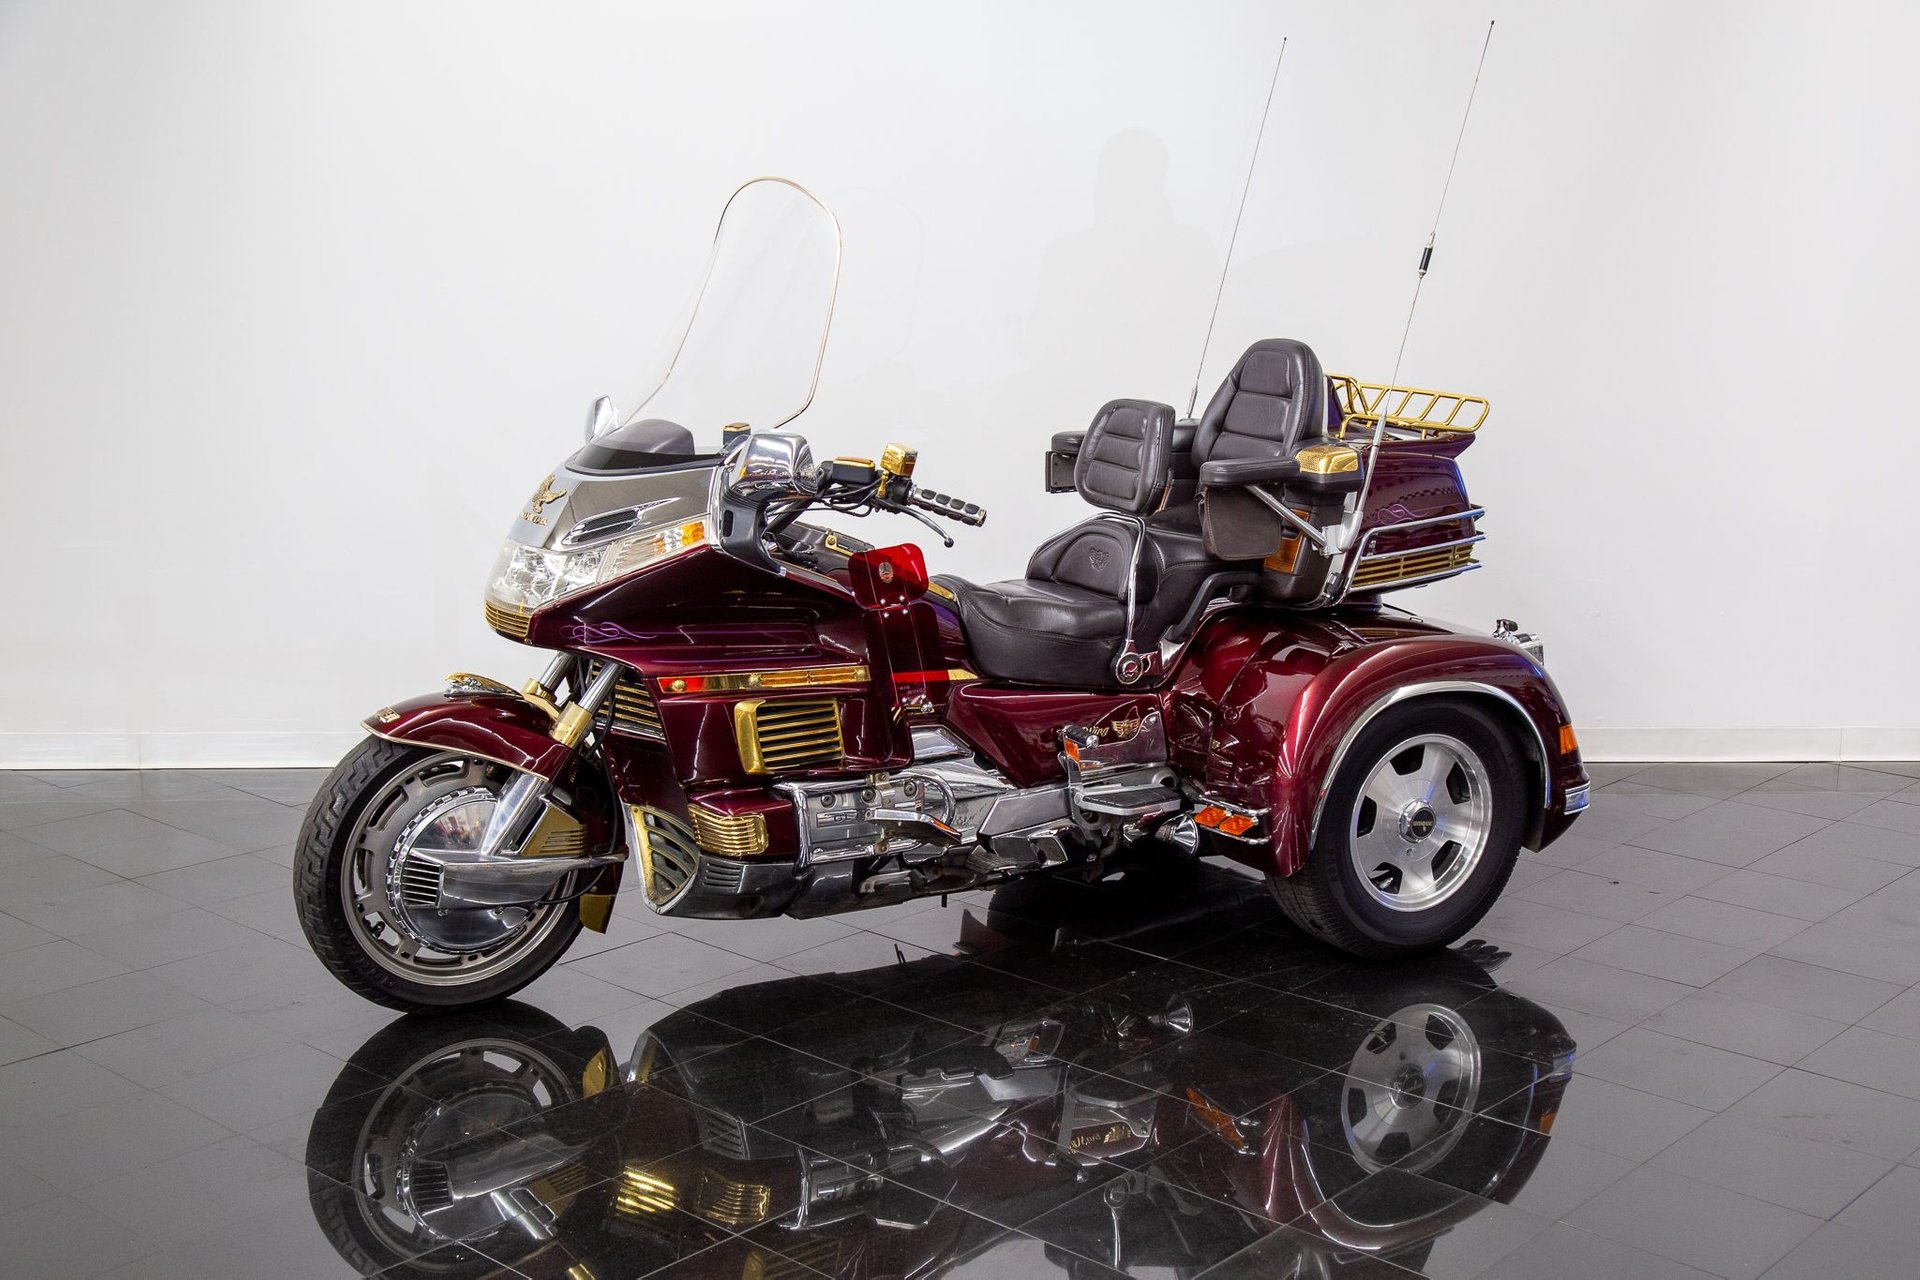 1989 Honda Gold Wing Motorcycle for sale